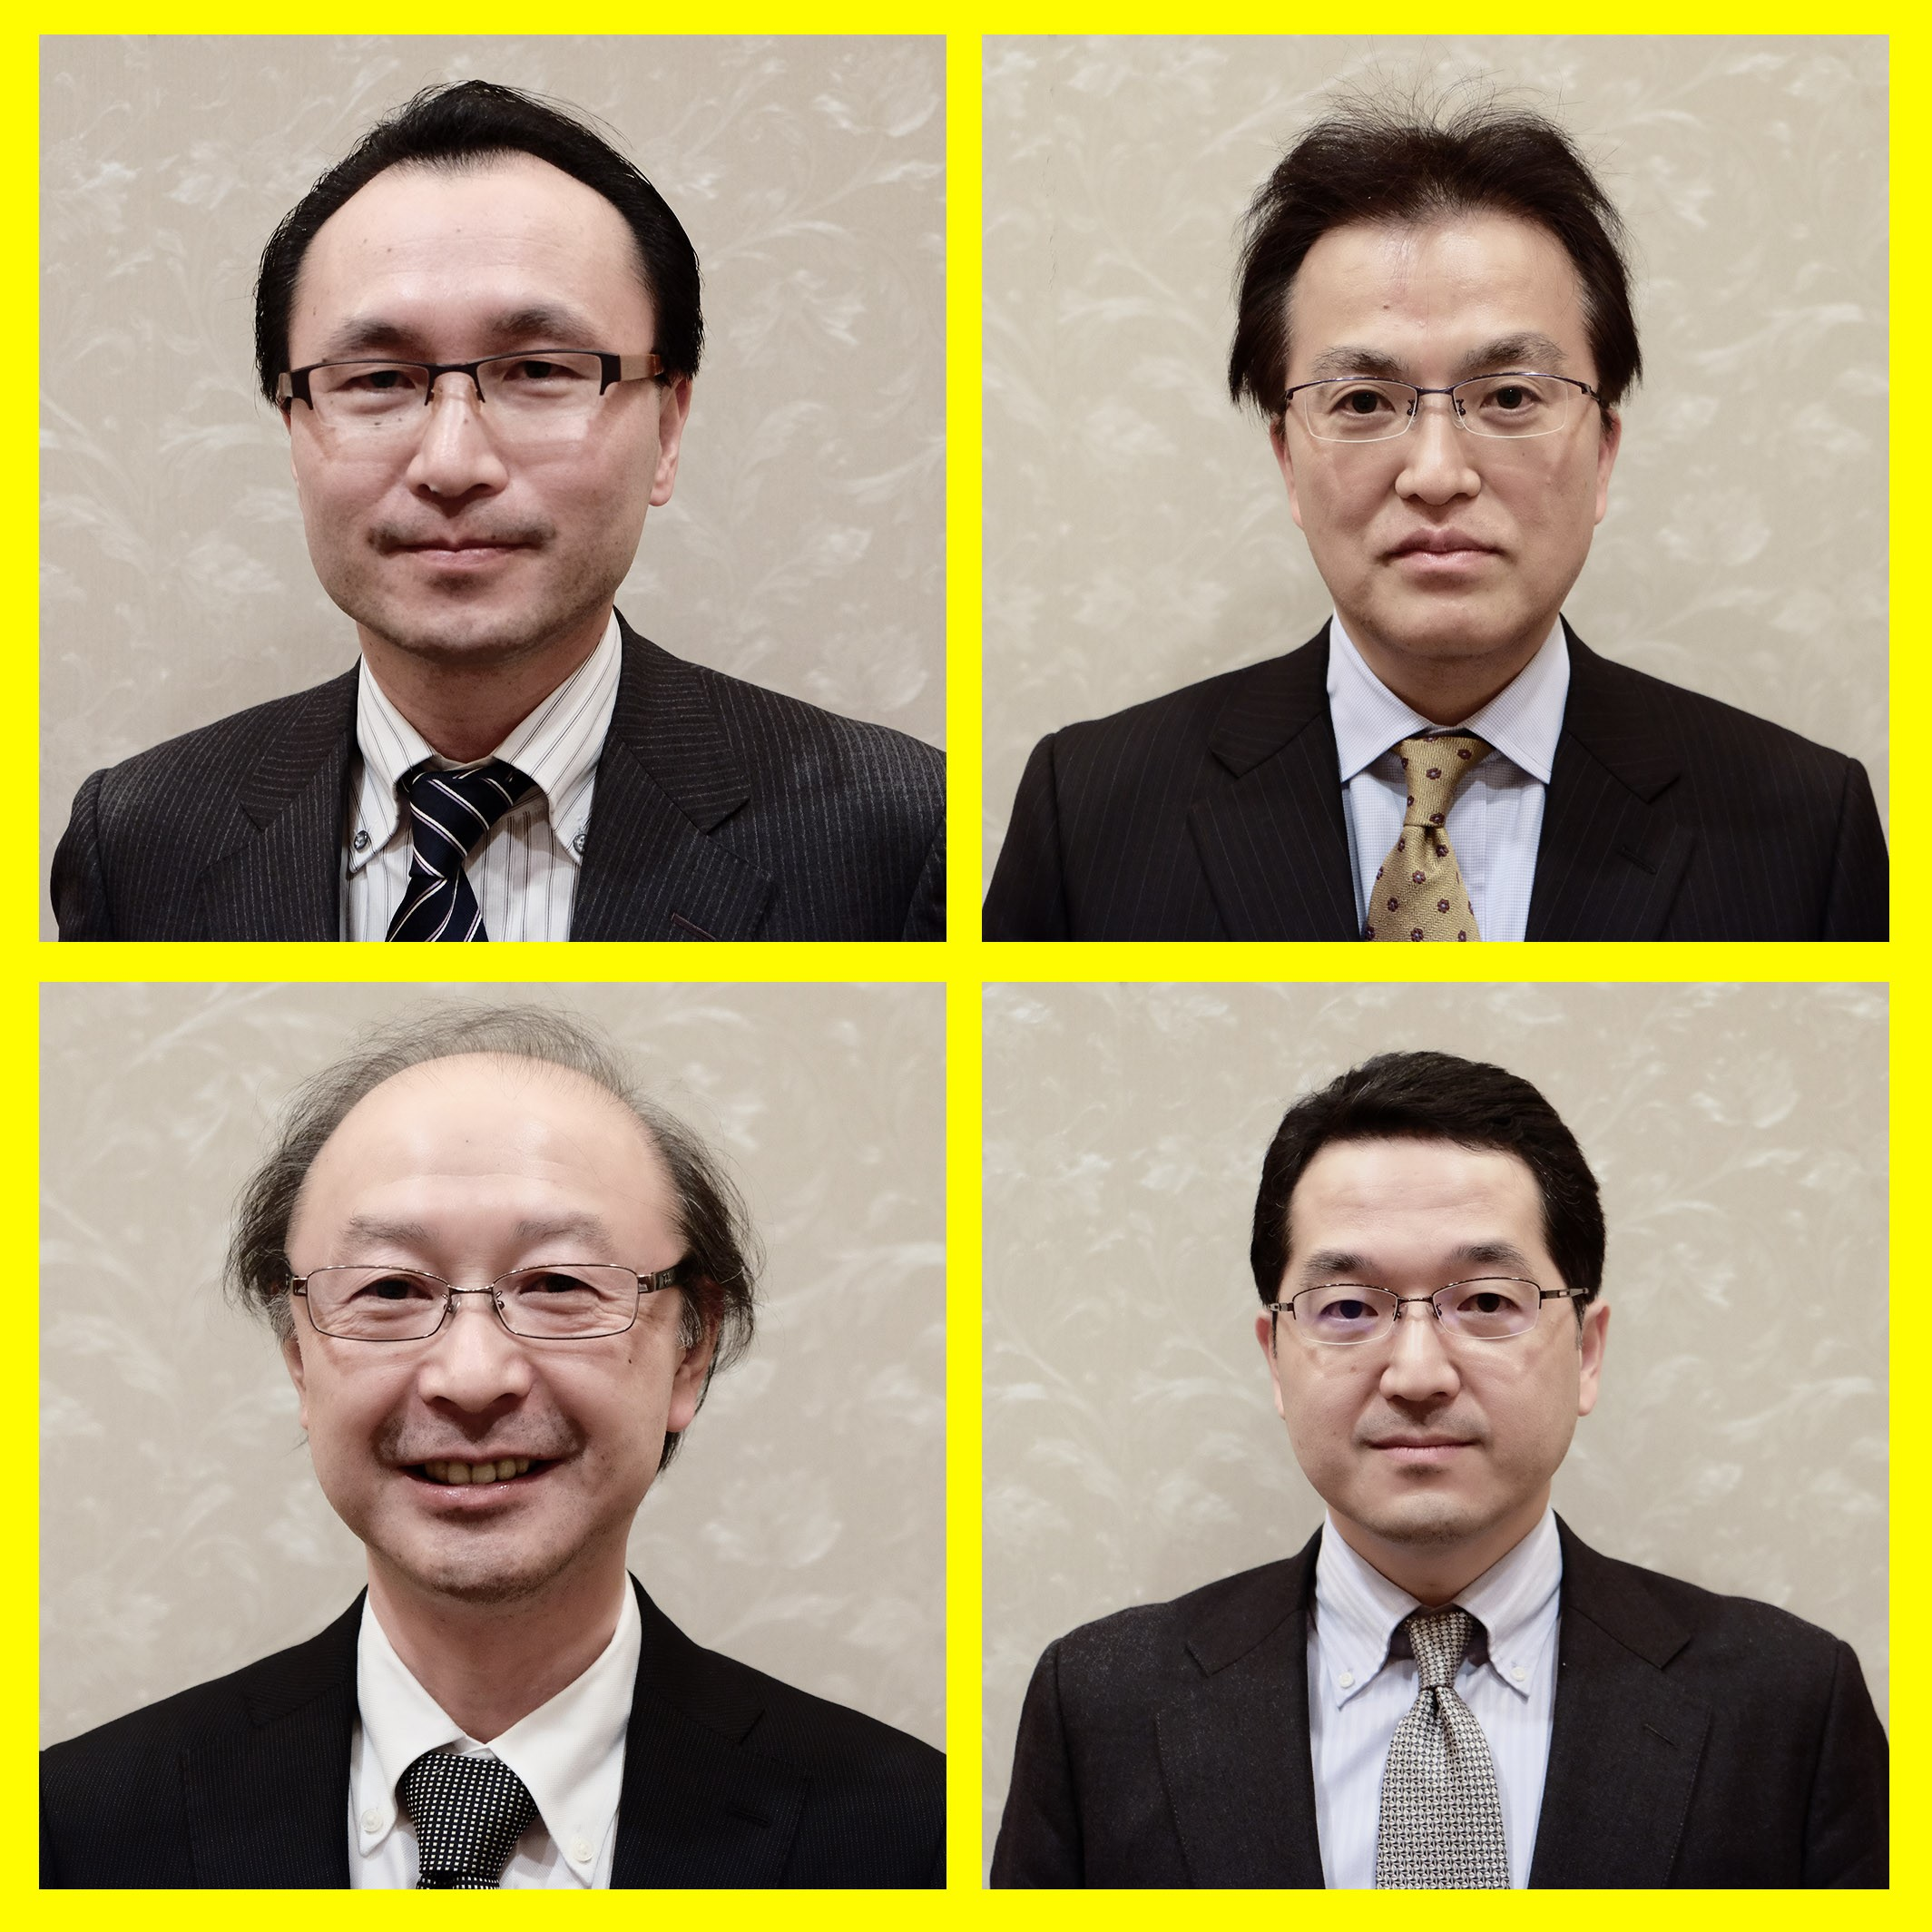 Cp 2014 Nikon Interview Our Cameras Need To Evolve Digital Niion Lunar Running Black Clockwise From Upper Left Hirotake Nozaki Marketing Manager For Slr And Interchangeable Lenses Shigeru Kusumoto General Of The M Arketing Dept